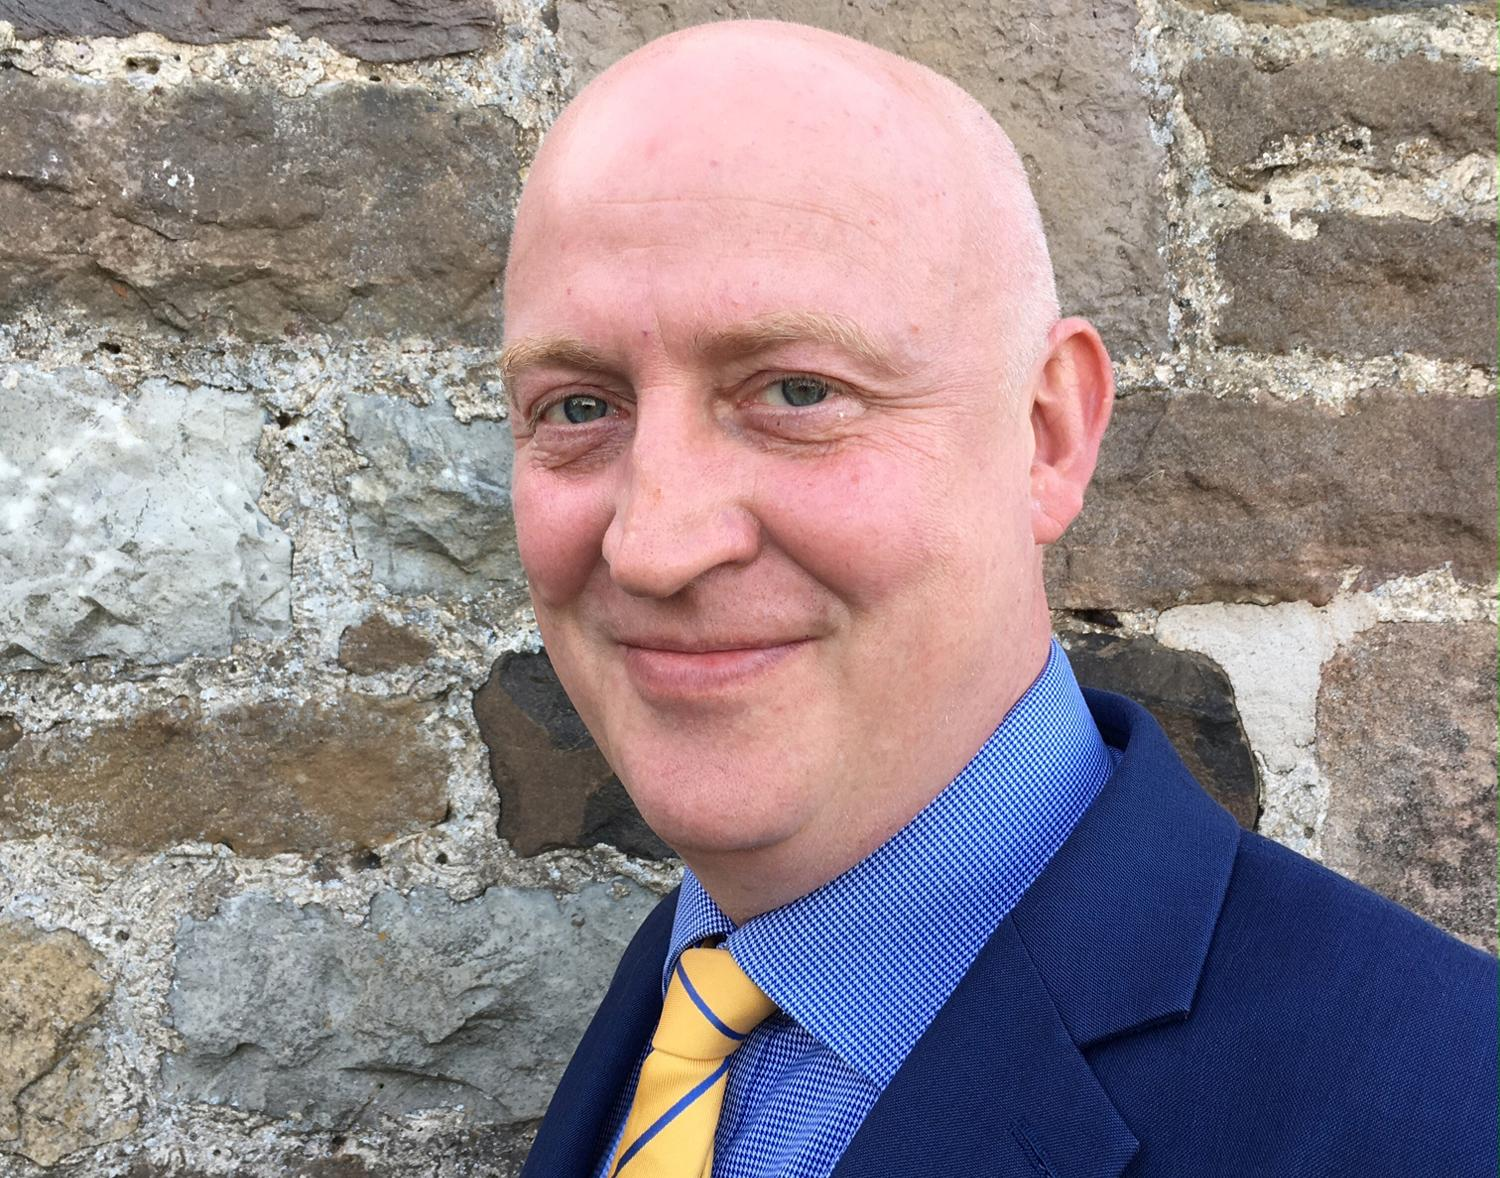 Croft brings with him over 25 years of senior leadership experience, spanning positions at the Department for International Trade and VisitBritain